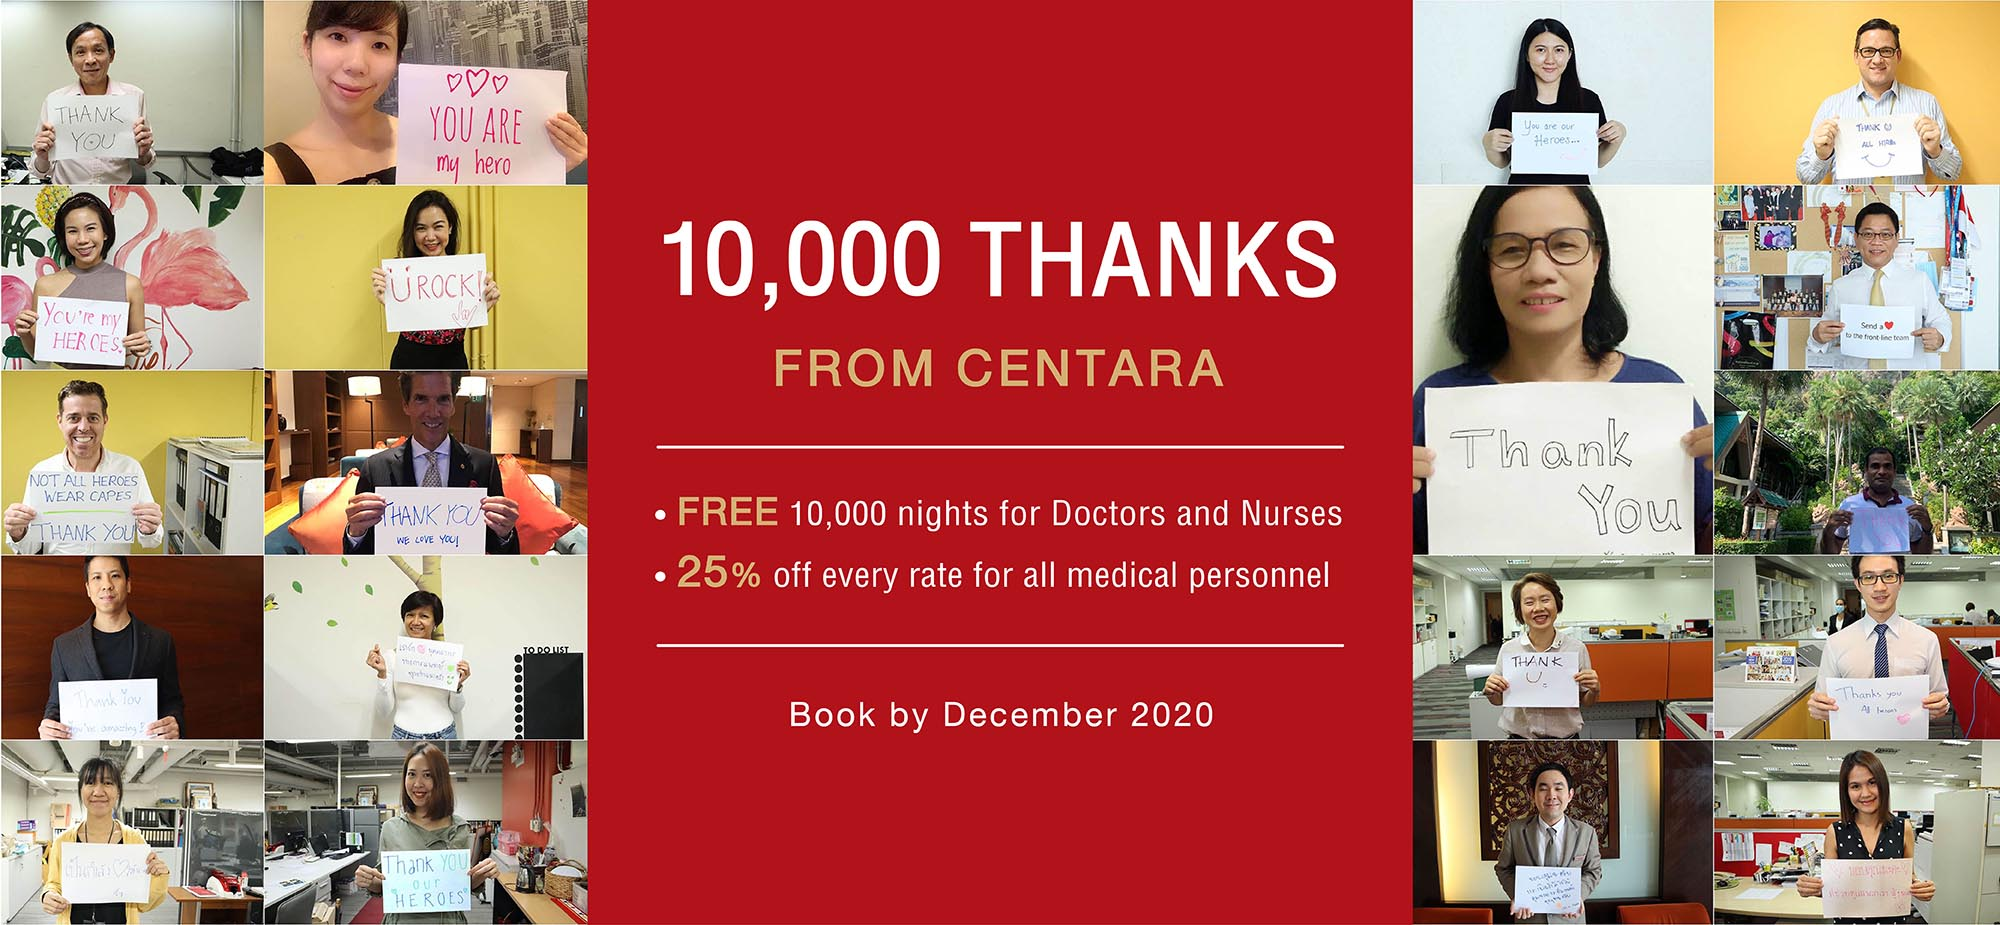 Centara donates 10,000 room nights to medical heroes